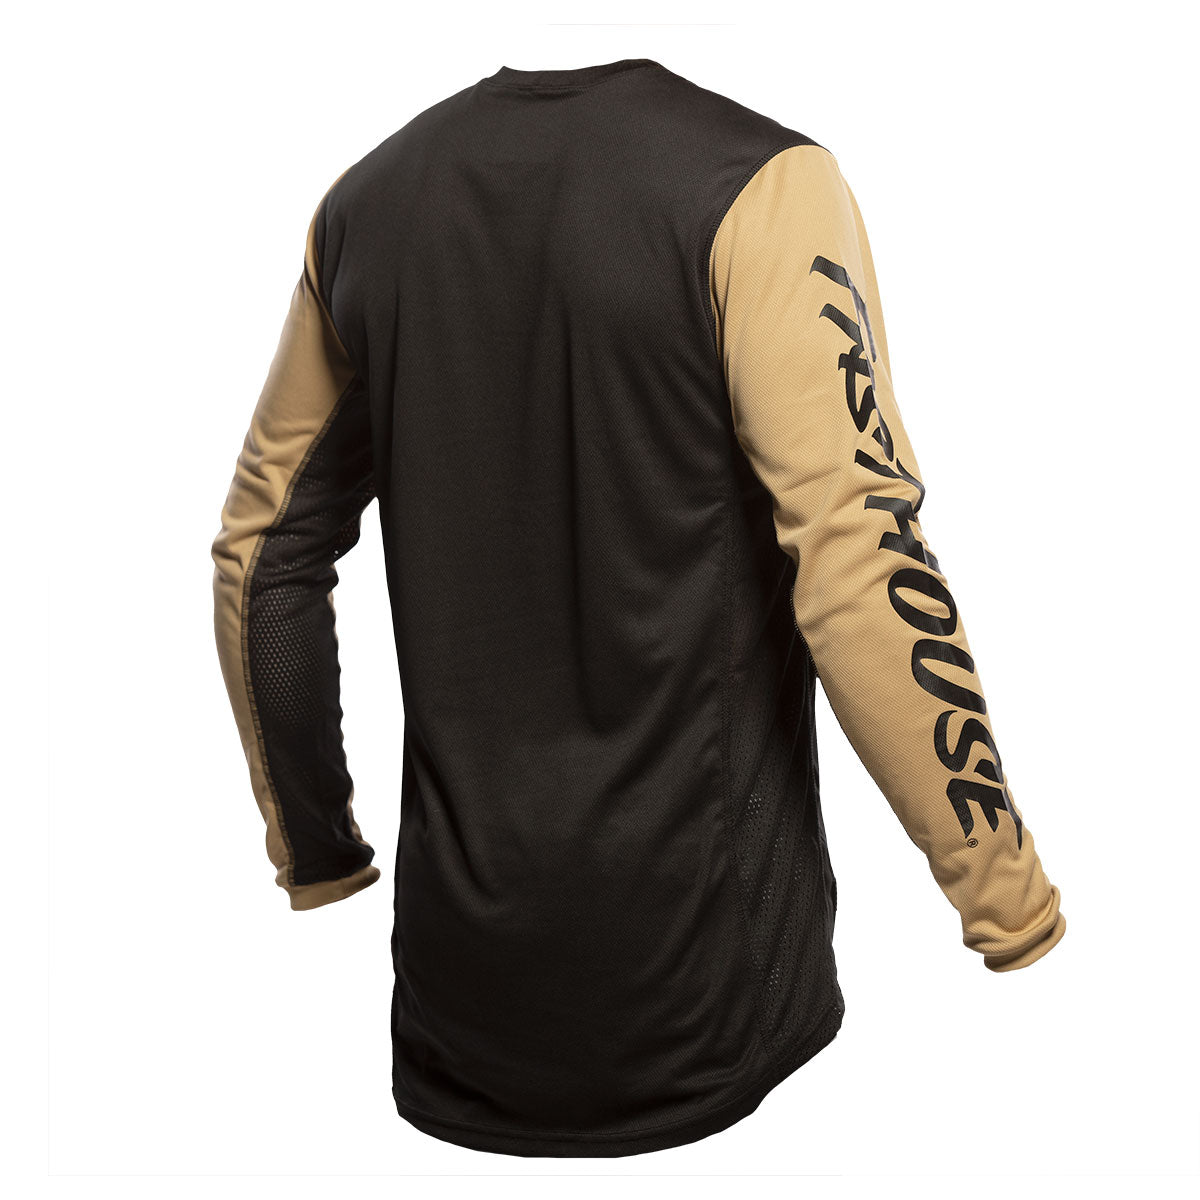 Strike Jersey - Black/Khaki